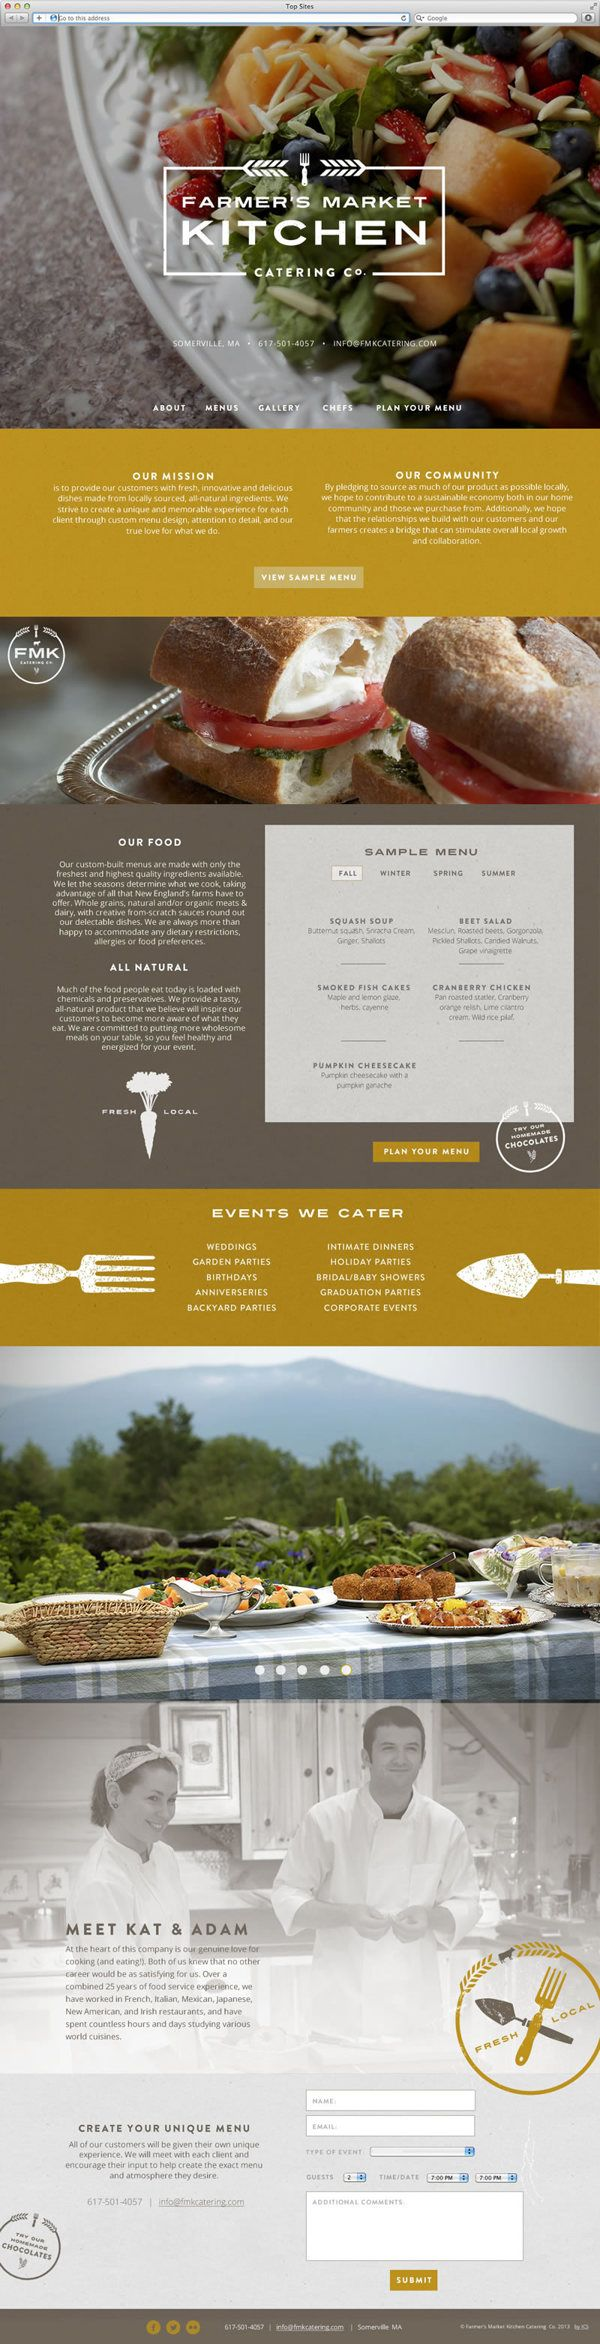 kitchen web design. Catering Web Design  Farmer s Market Kitchen by Image Conscious Studiois 395 best WEB DESIGN images on Pinterest layout Website